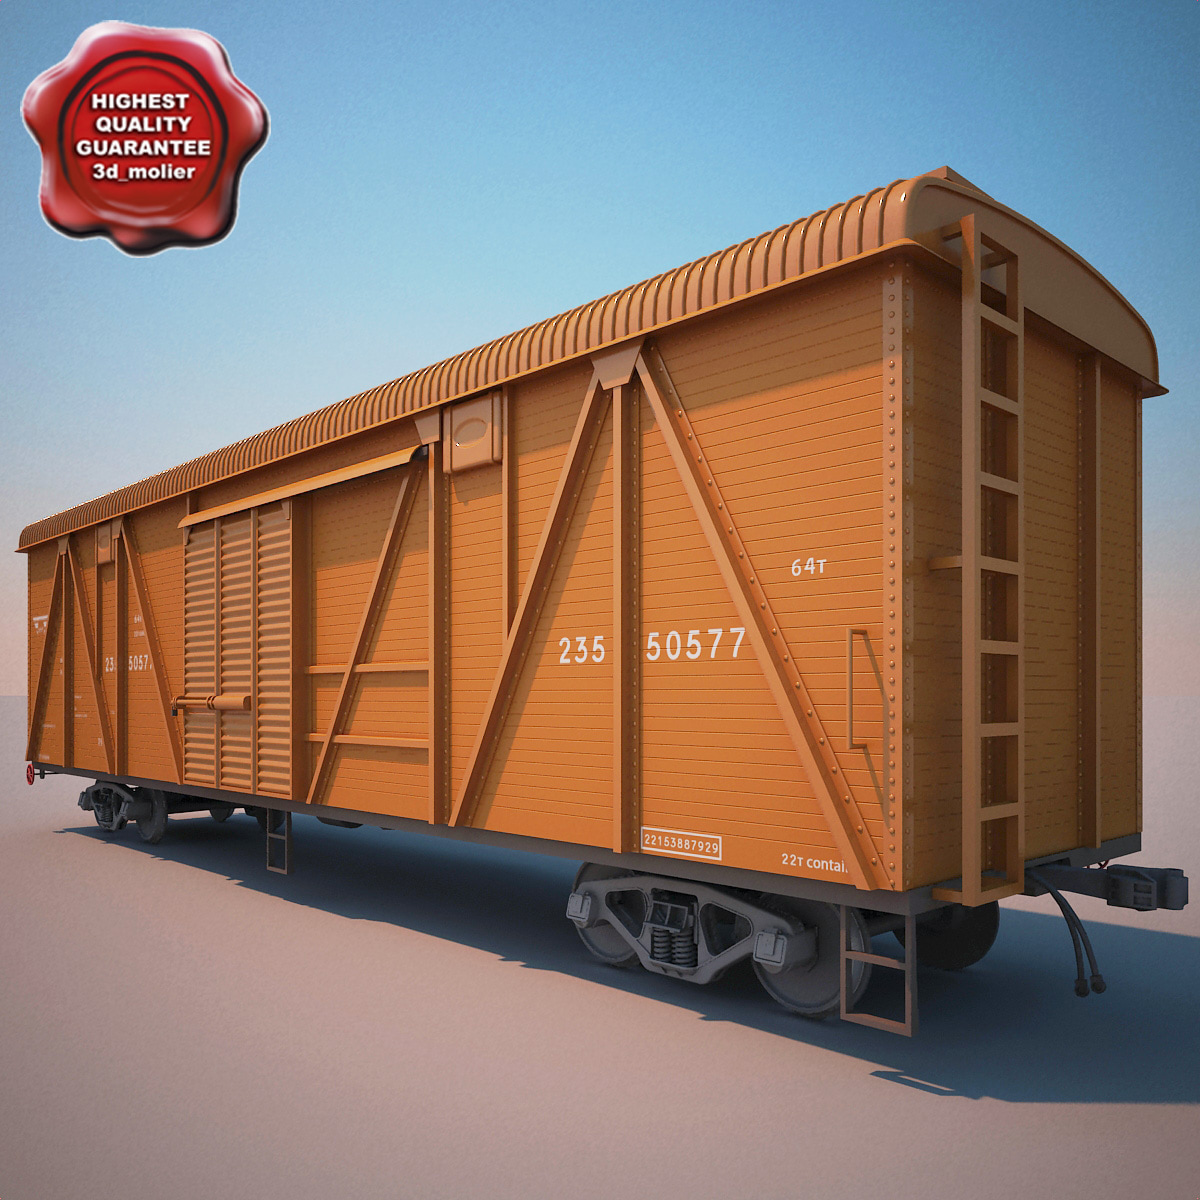 Goods_Wagon_11-066_V2_00.jpg